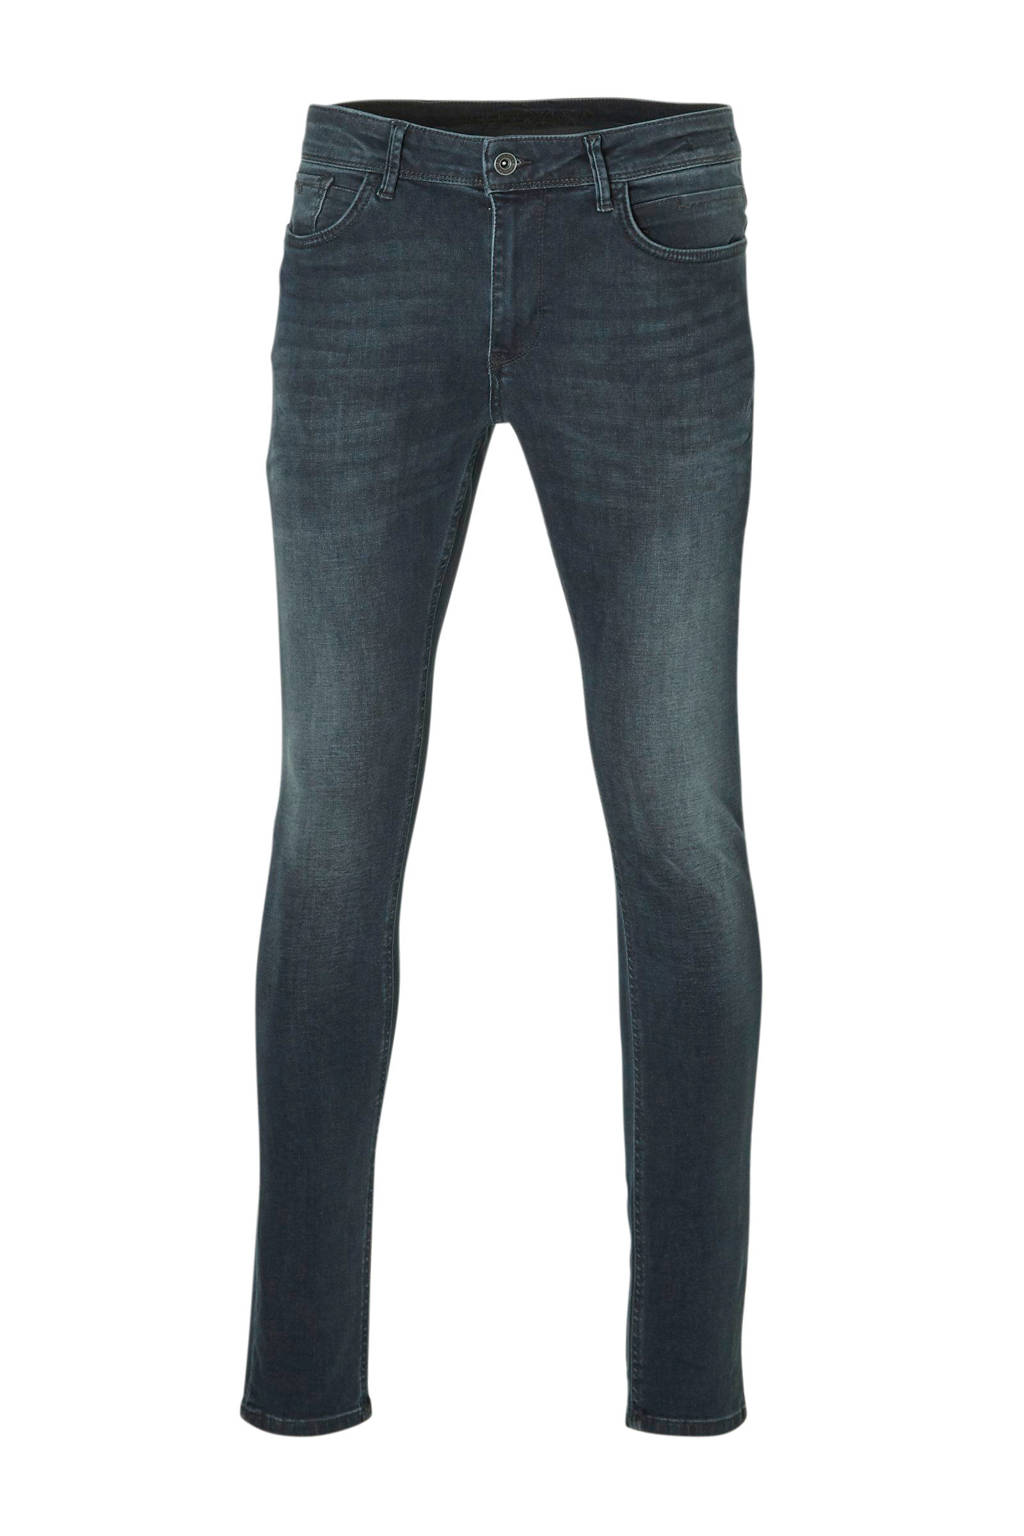 Purewhite regular fit jeans The Jone donkerblauw, Donkerblauw